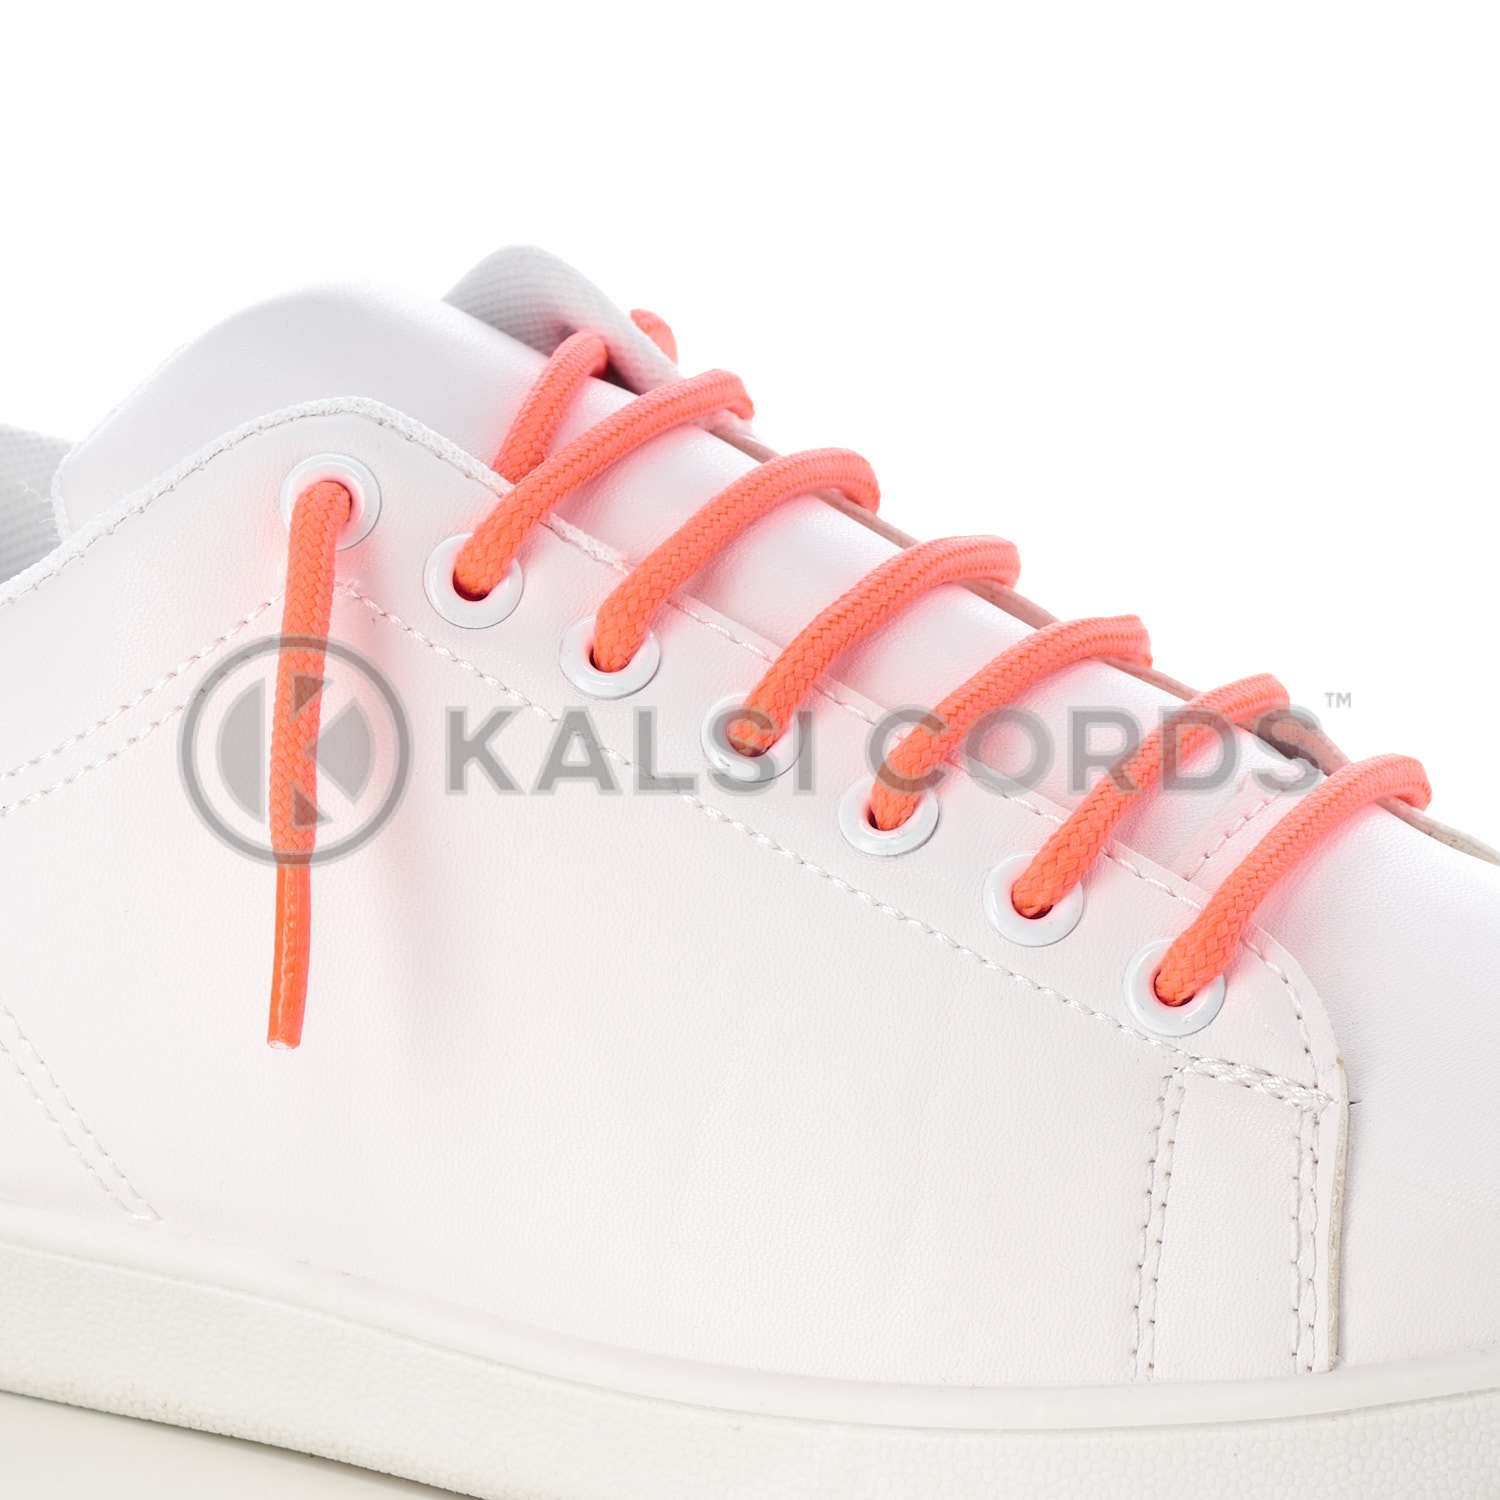 T621 5mm Round Cord Shoe Laces Fluorescent Neon Pink PG052 Kids Trainers Adults Hiking Walking Boots Kalsi Cords